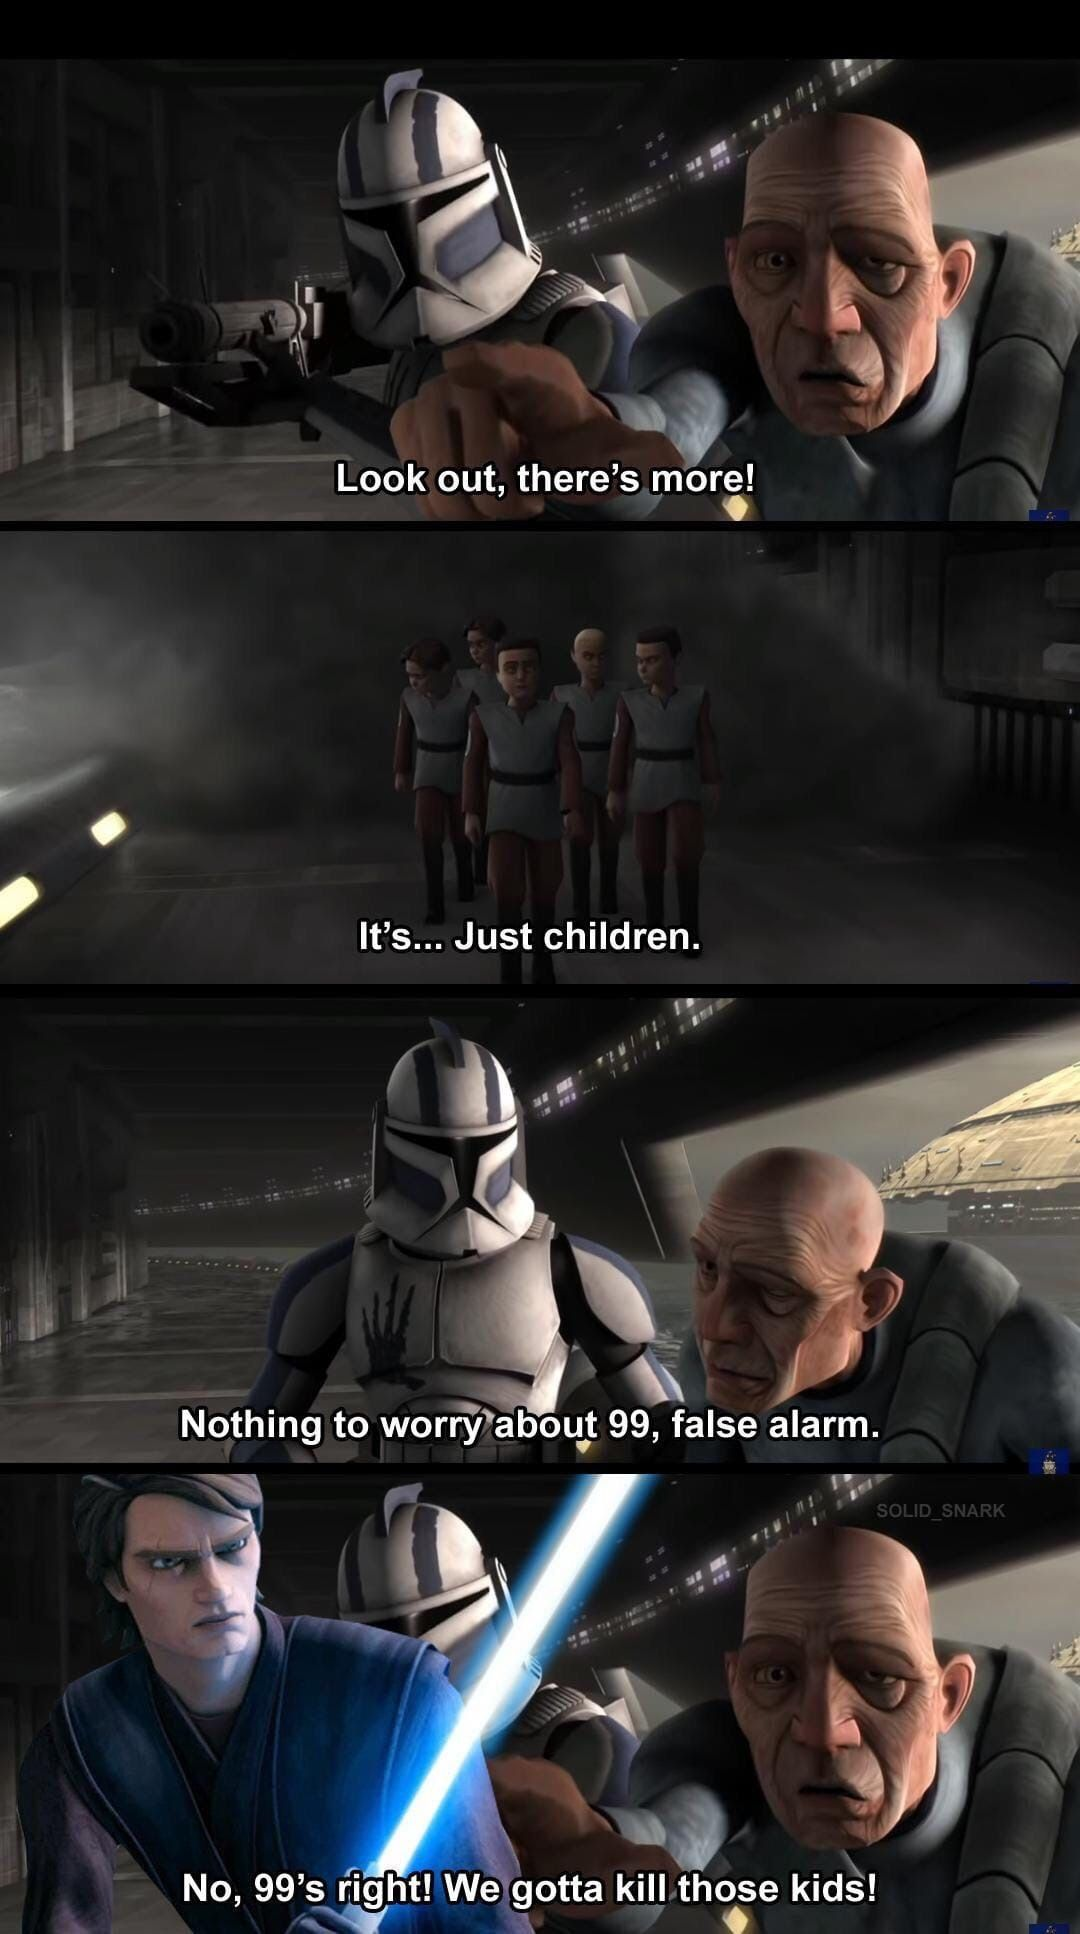 Pin By Cayla Suttle On Star Wars Star Wars Memes Star Wars Facts Star Wars Pictures